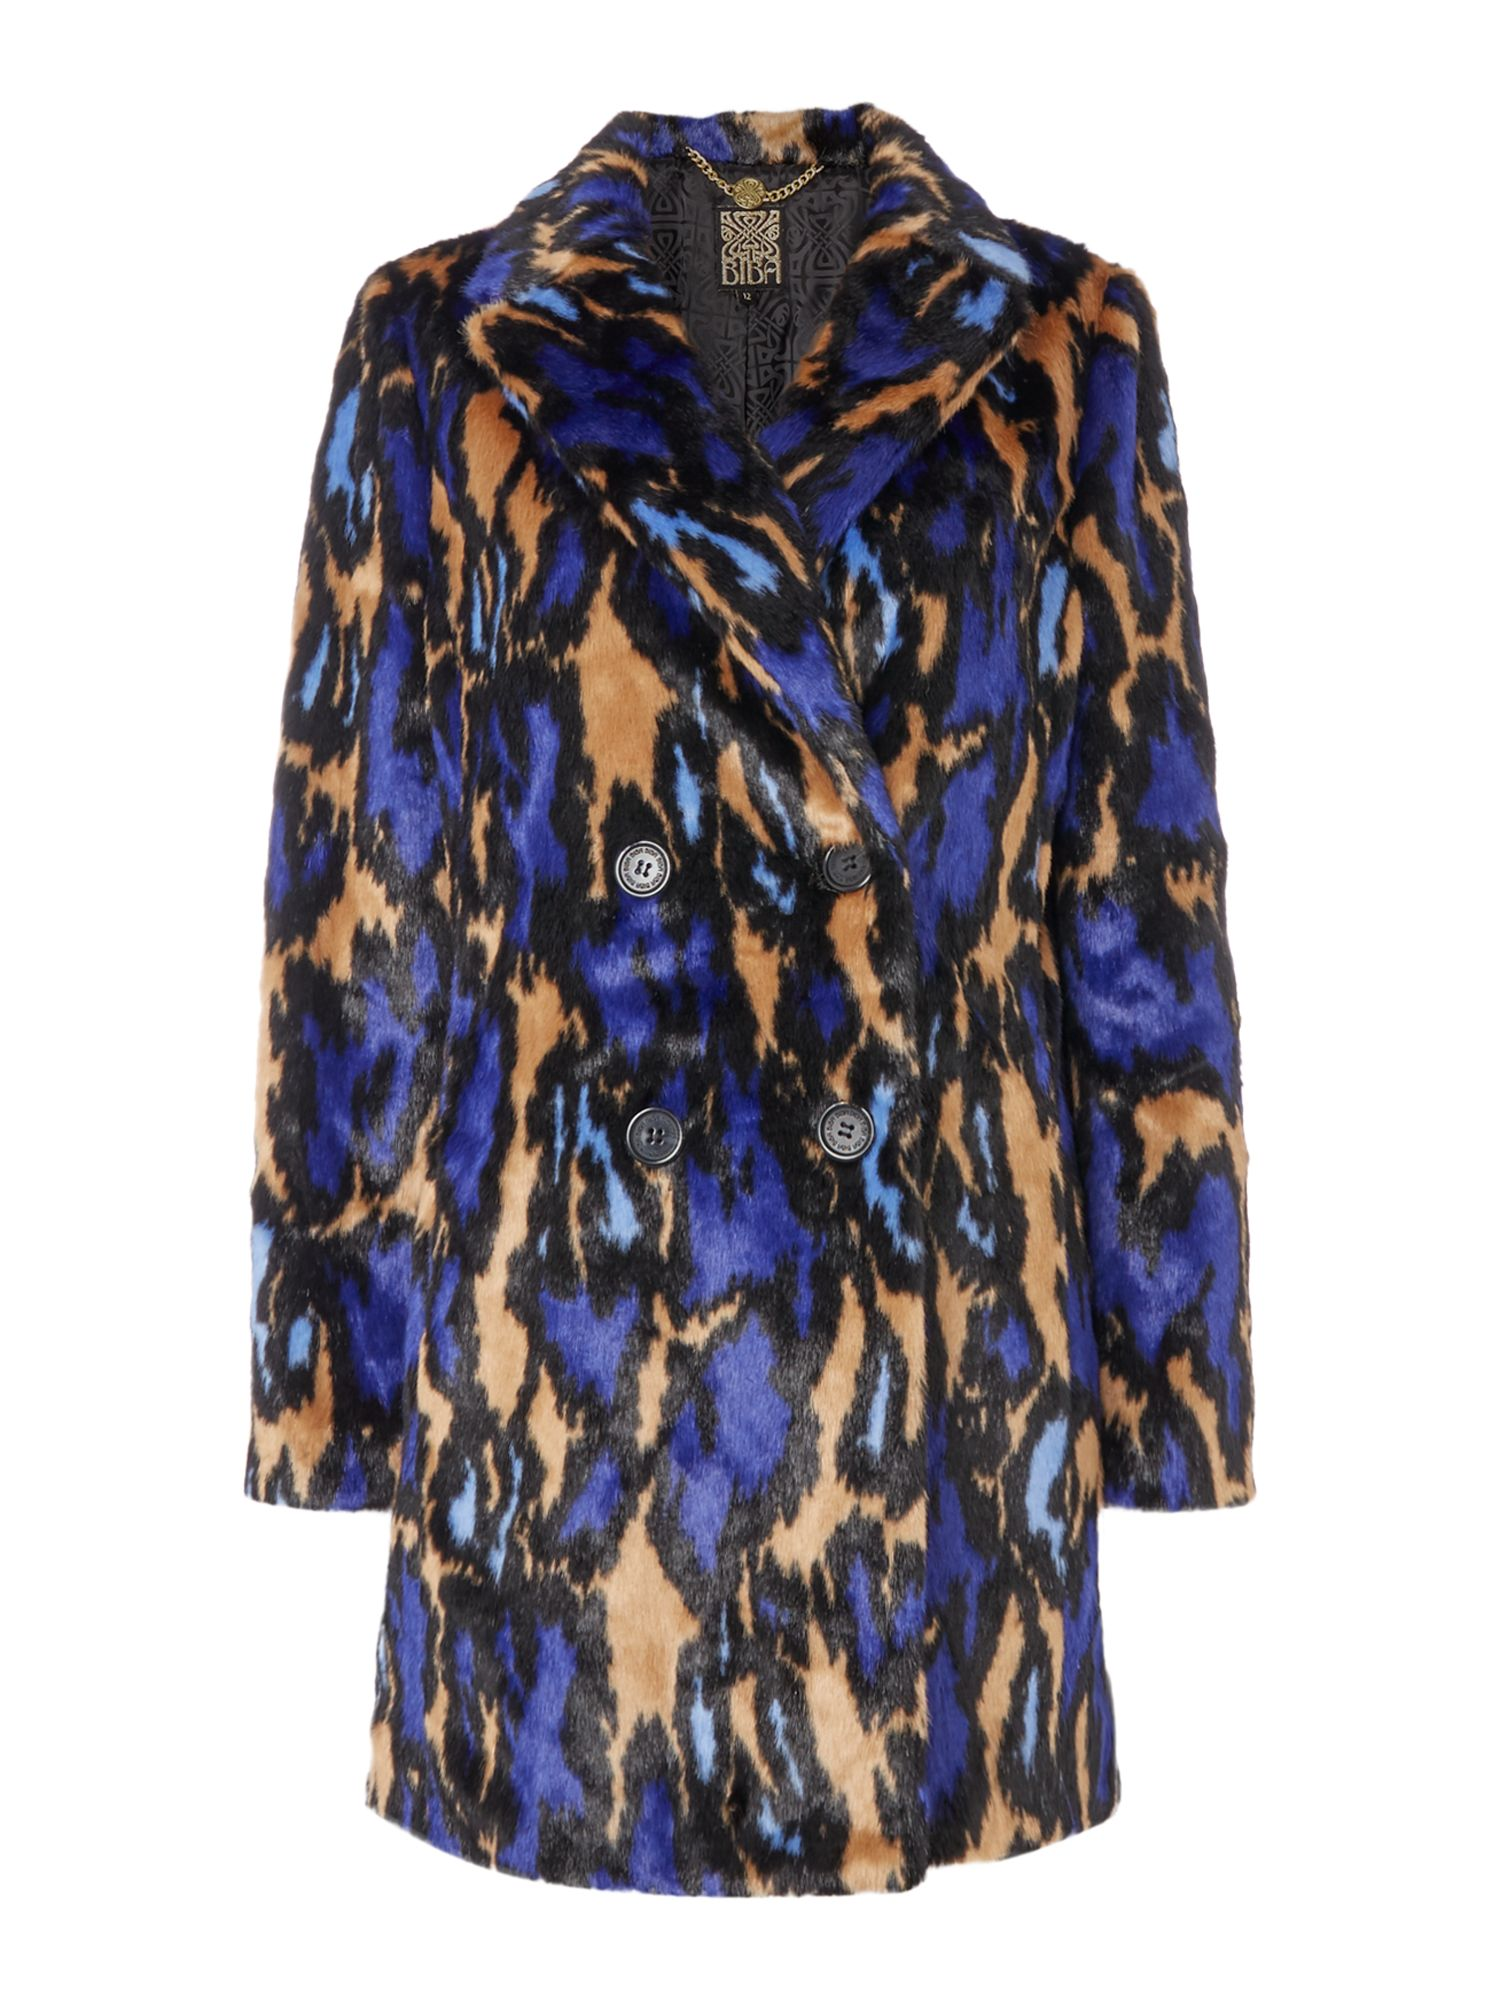 Biba Leopard abstract 60s style faux fur coat, Multi-Coloured